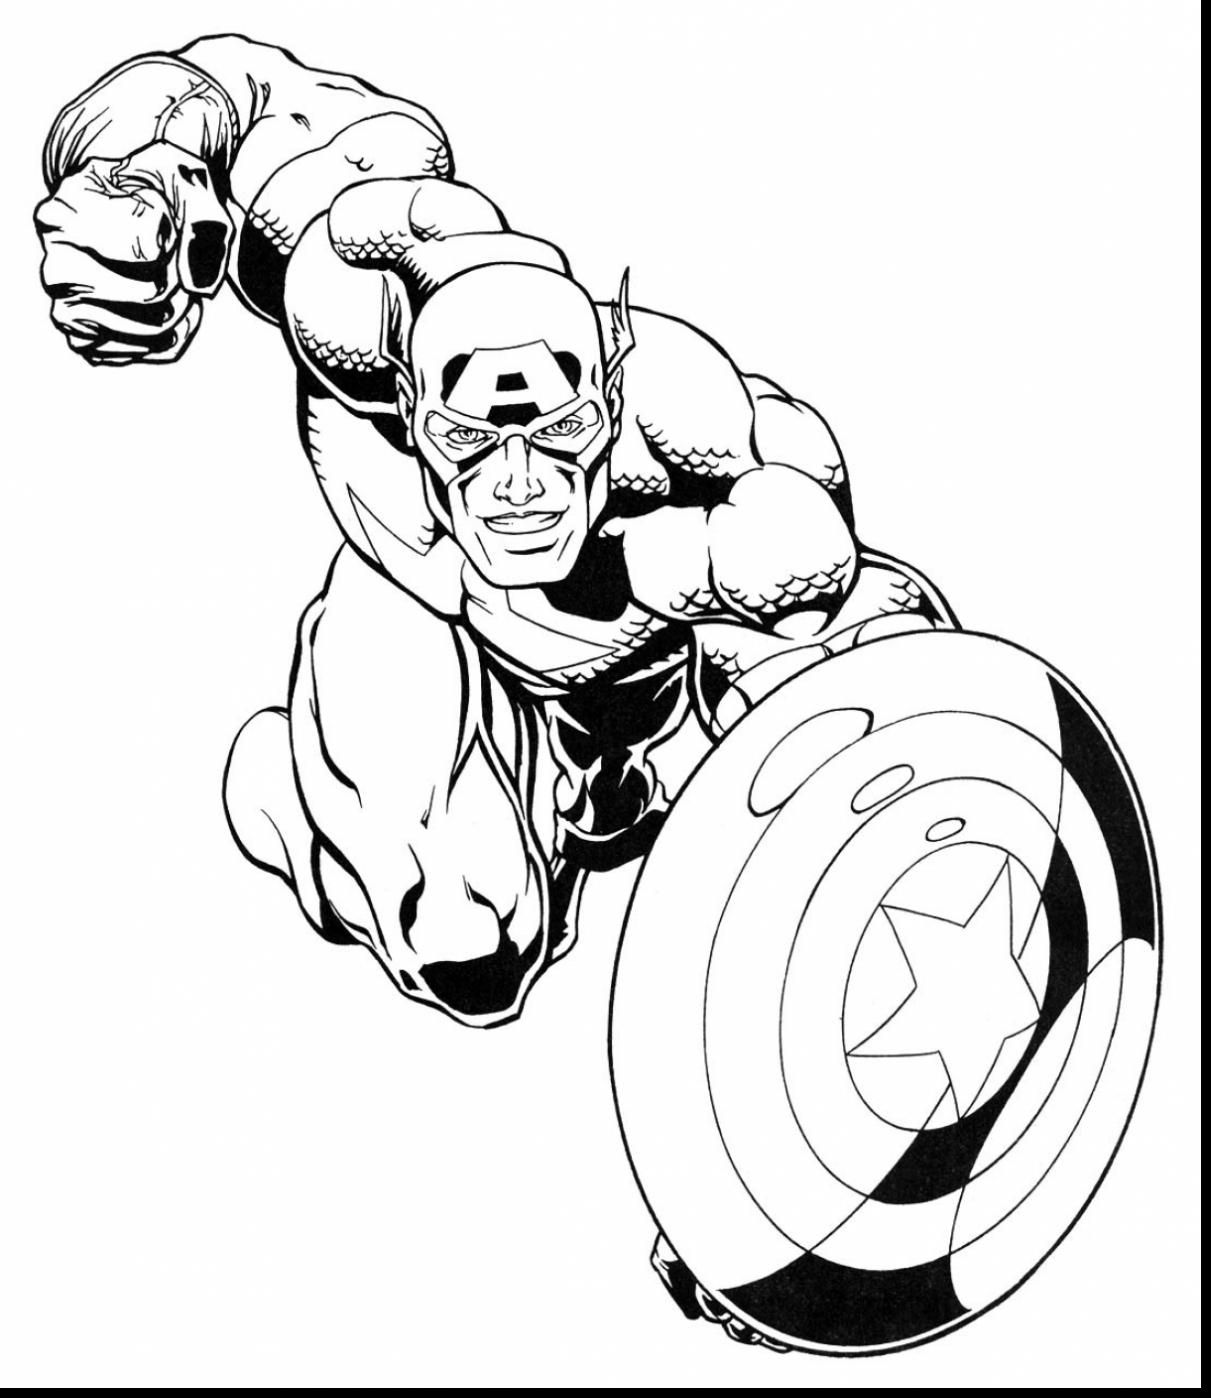 incredible marvel super heroes coloring pages with super hero squad